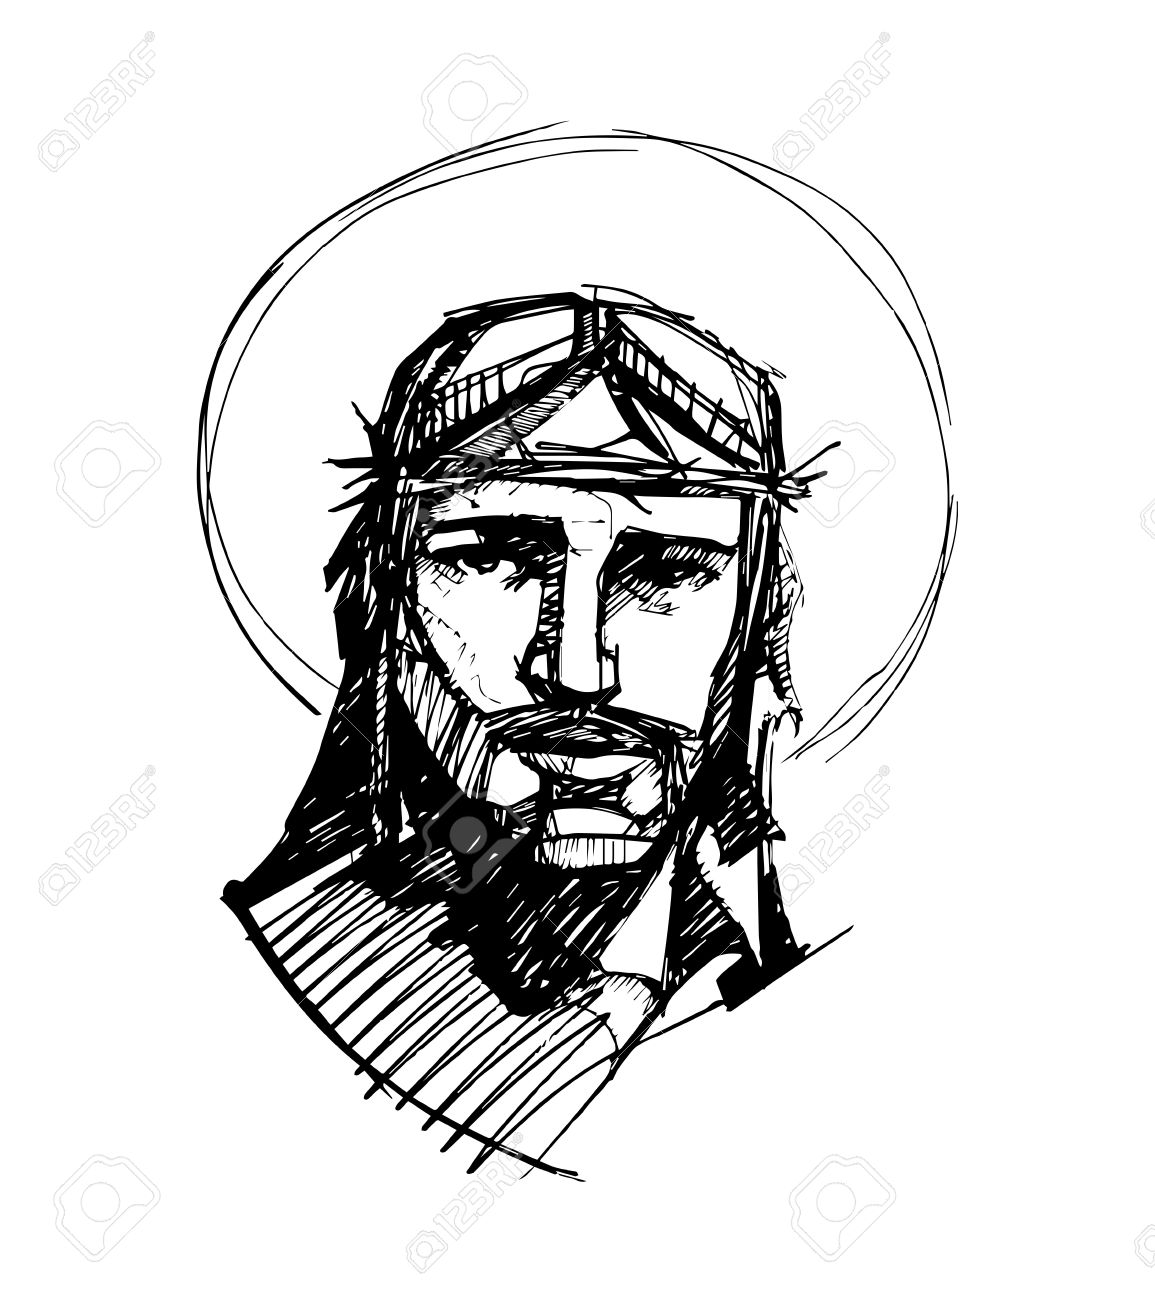 1155x1300 Hand Drawn Vector Illustration Or Drawing Of Jesus Christ